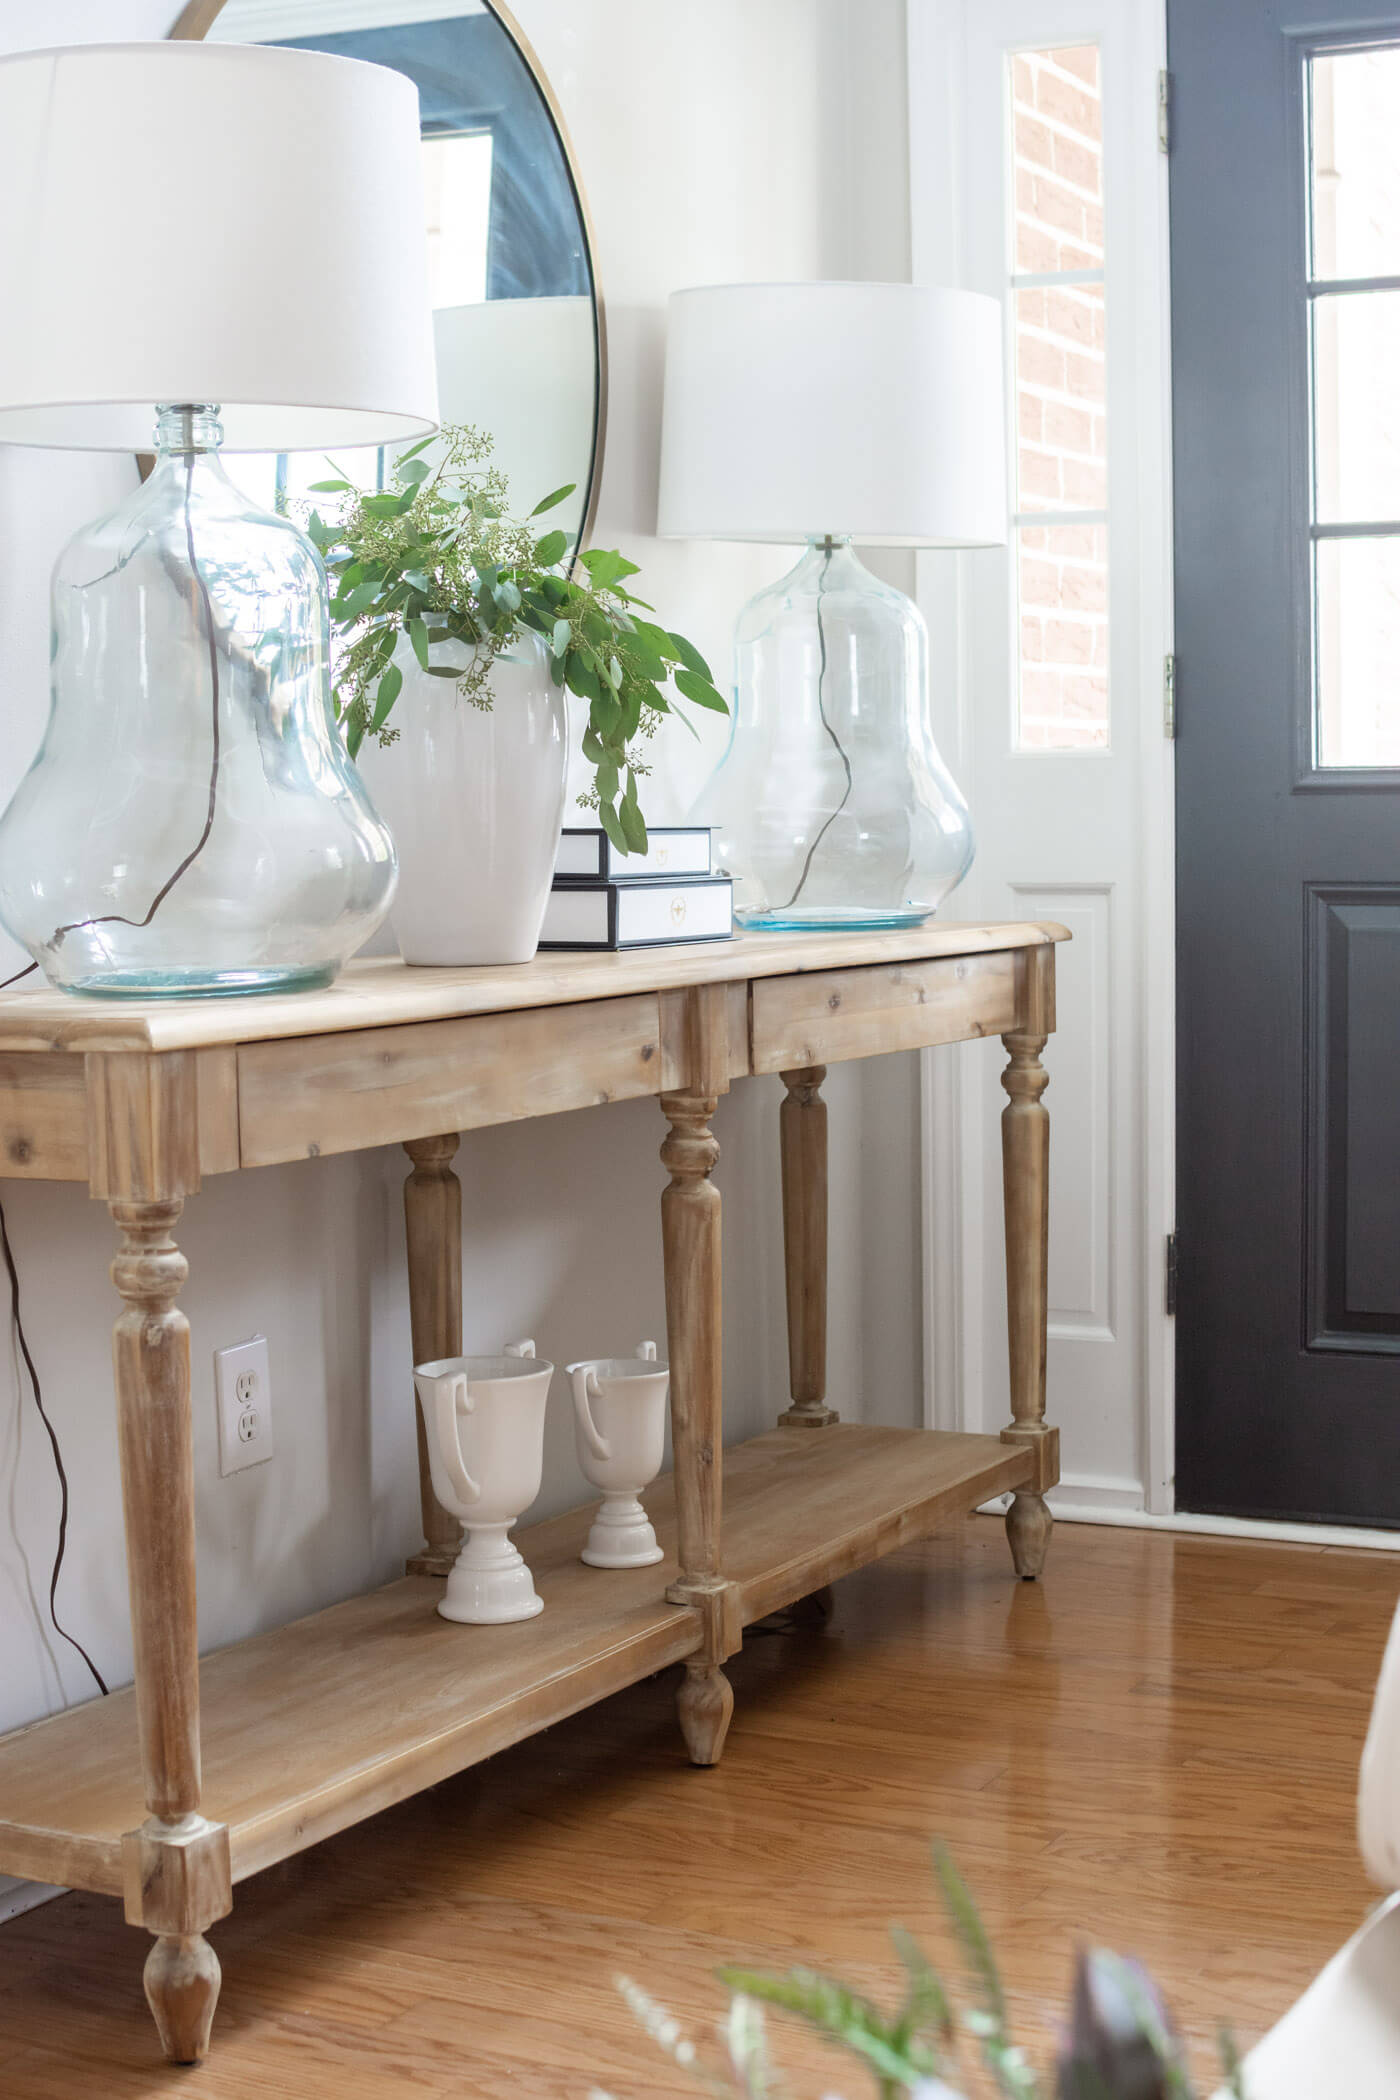 World Market Everett Console Table - thehomeicreate.com